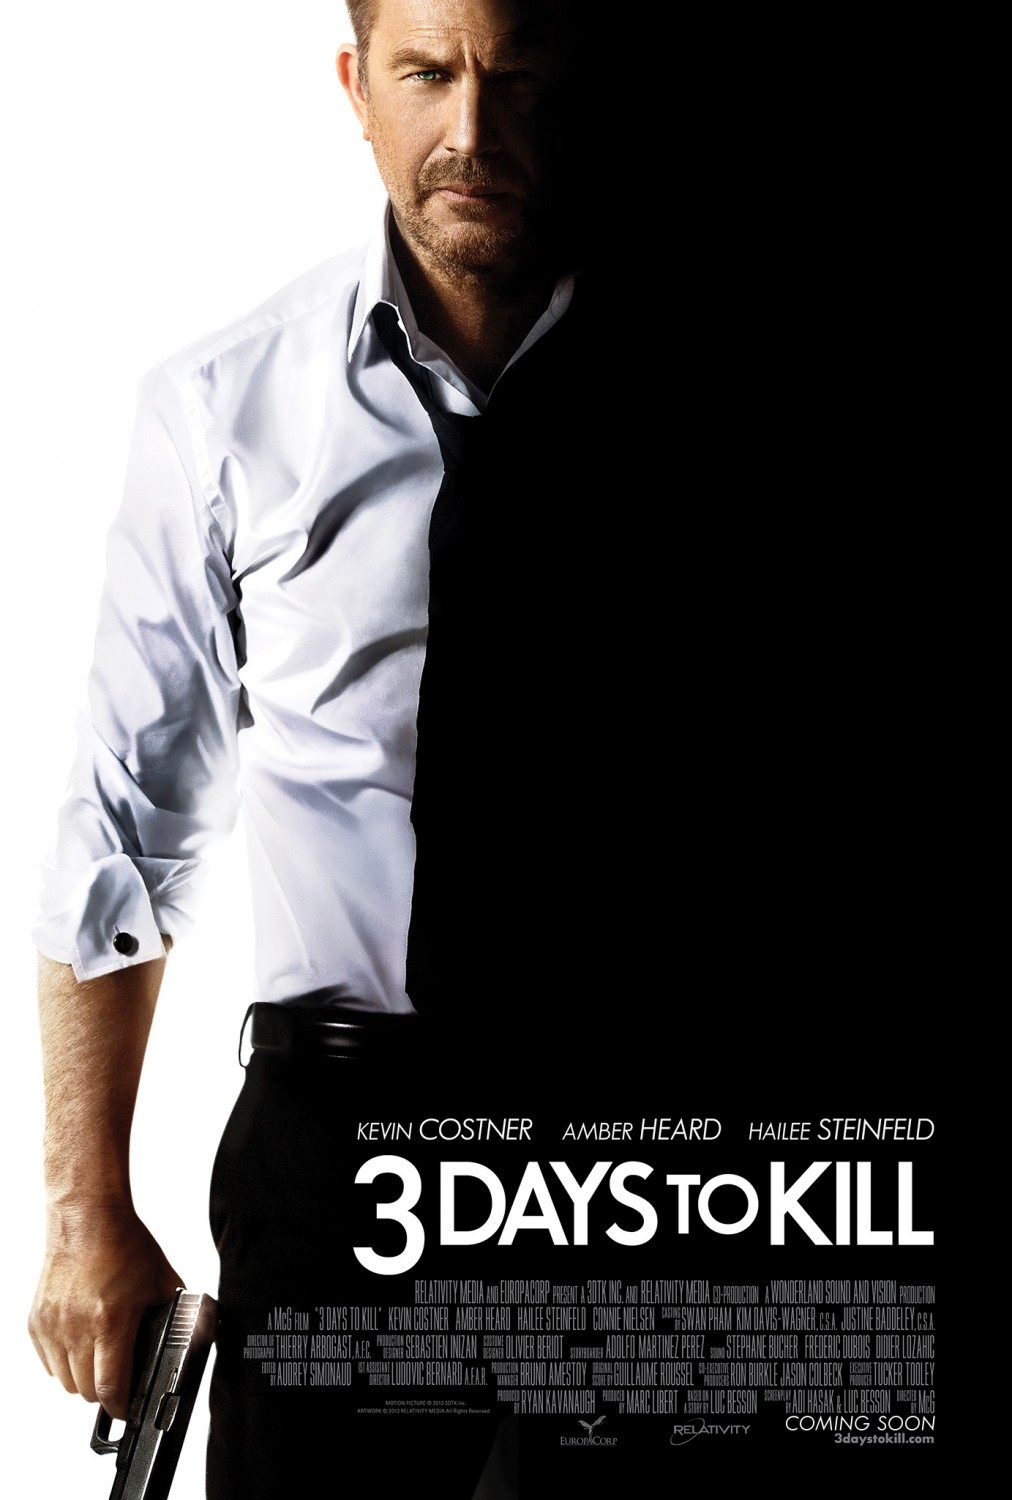 3 days to kill tráiler: Costner y Besson unen fuerzas.